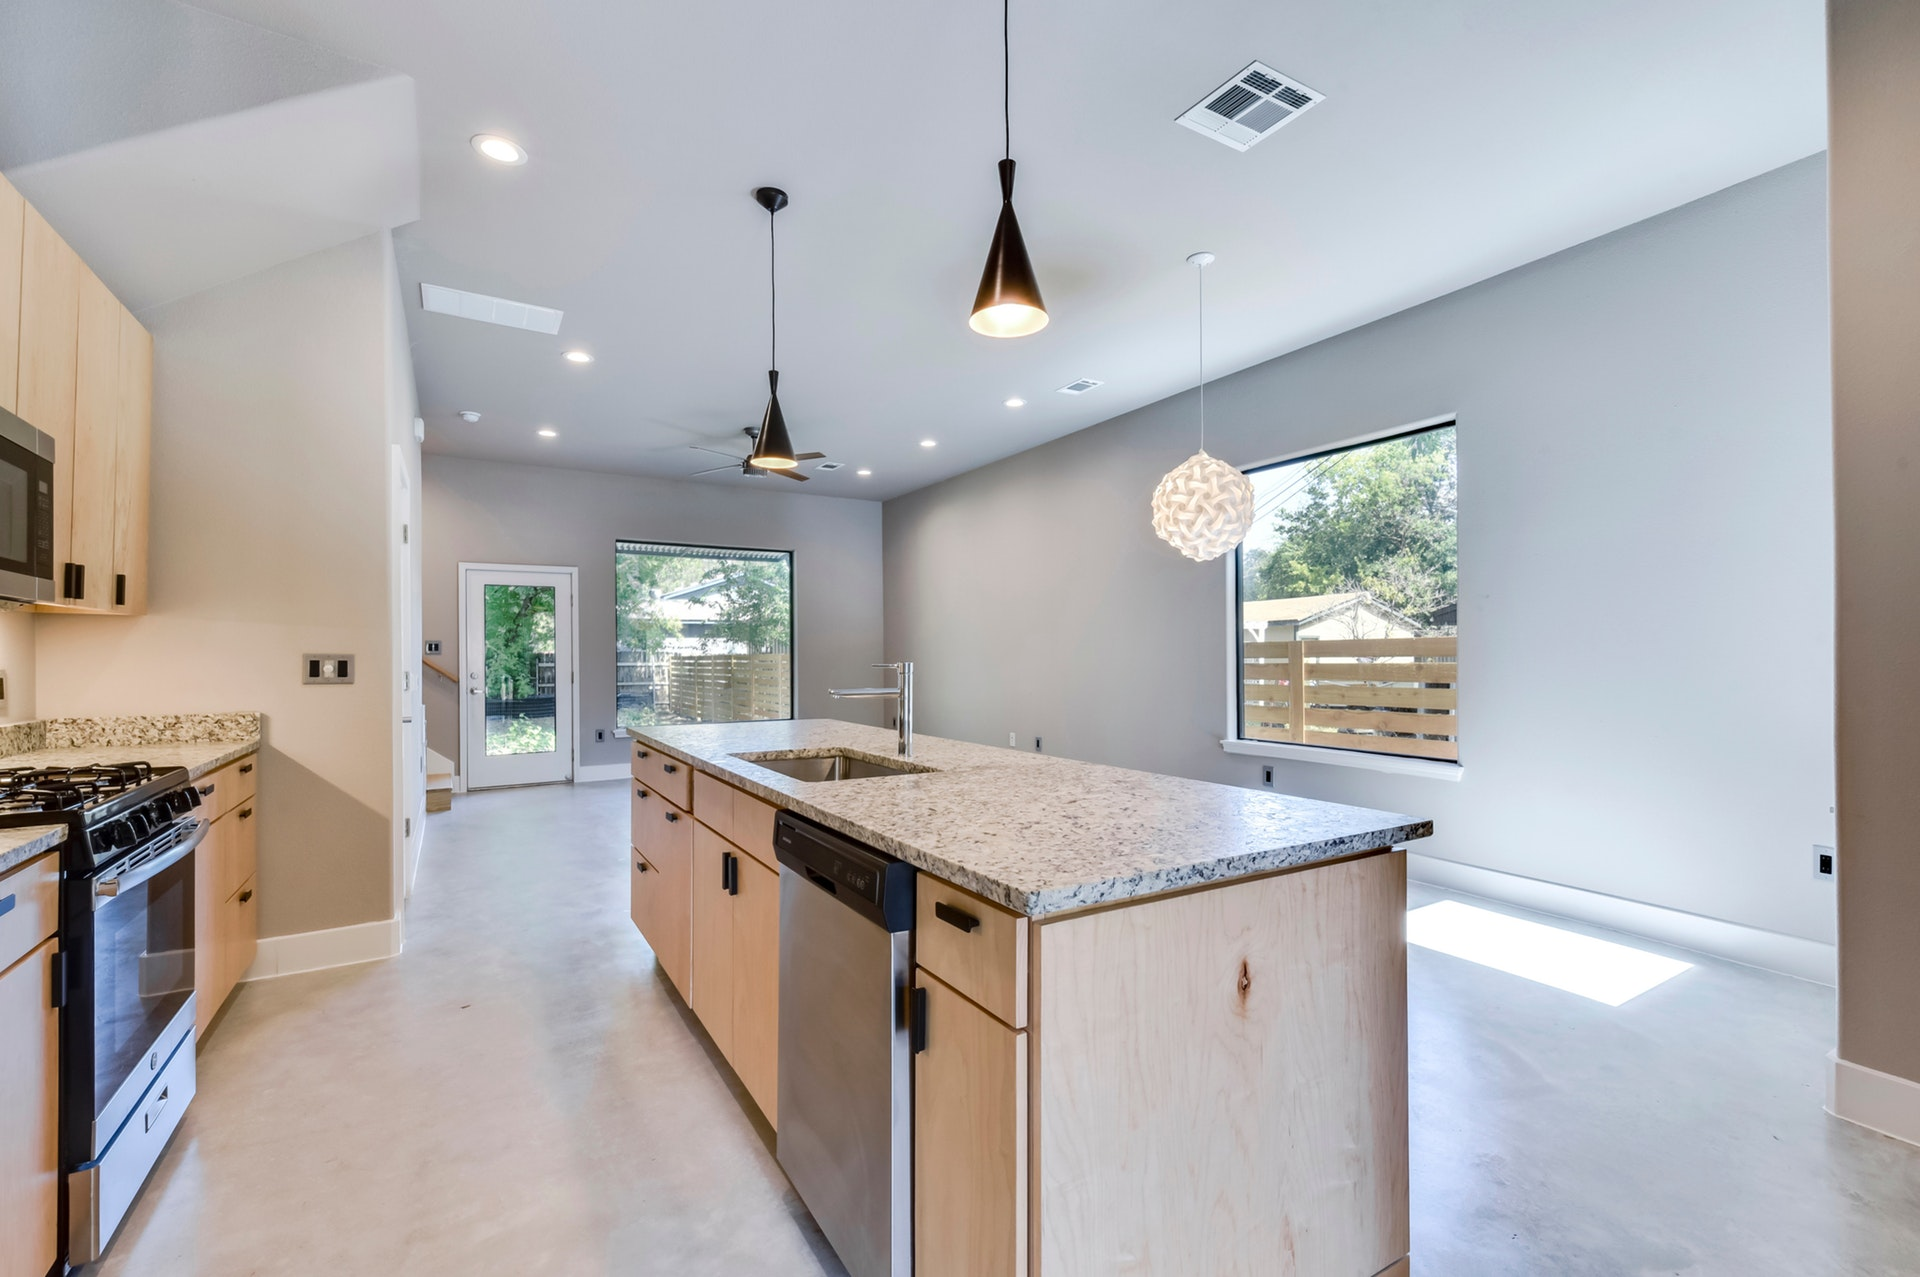 2900 Gonzales Street - Kitchen 2